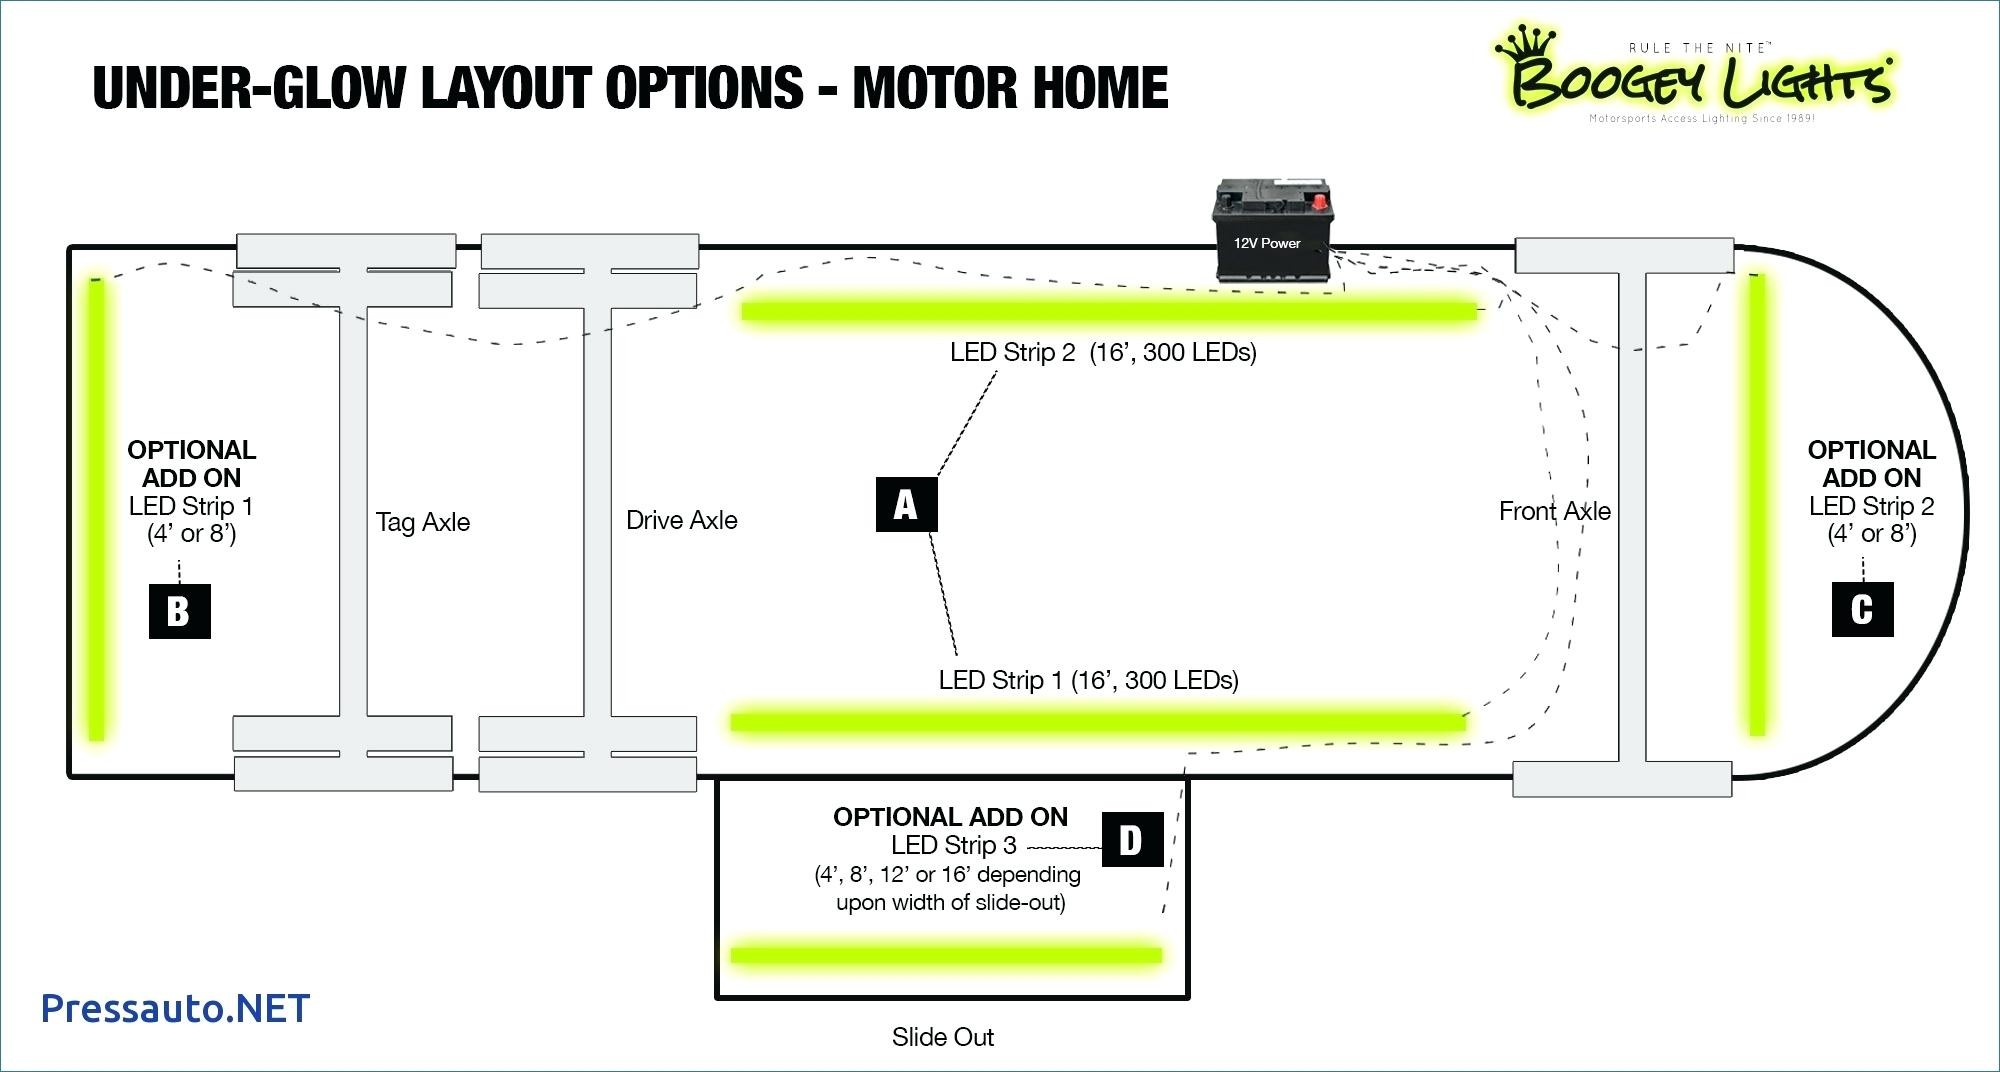 Utility Trailer Lights Wiring Diagram Rv Lights Wiring Diagram Good ford Trailer Harness for Your Read Of Utility Trailer Lights Wiring Diagram